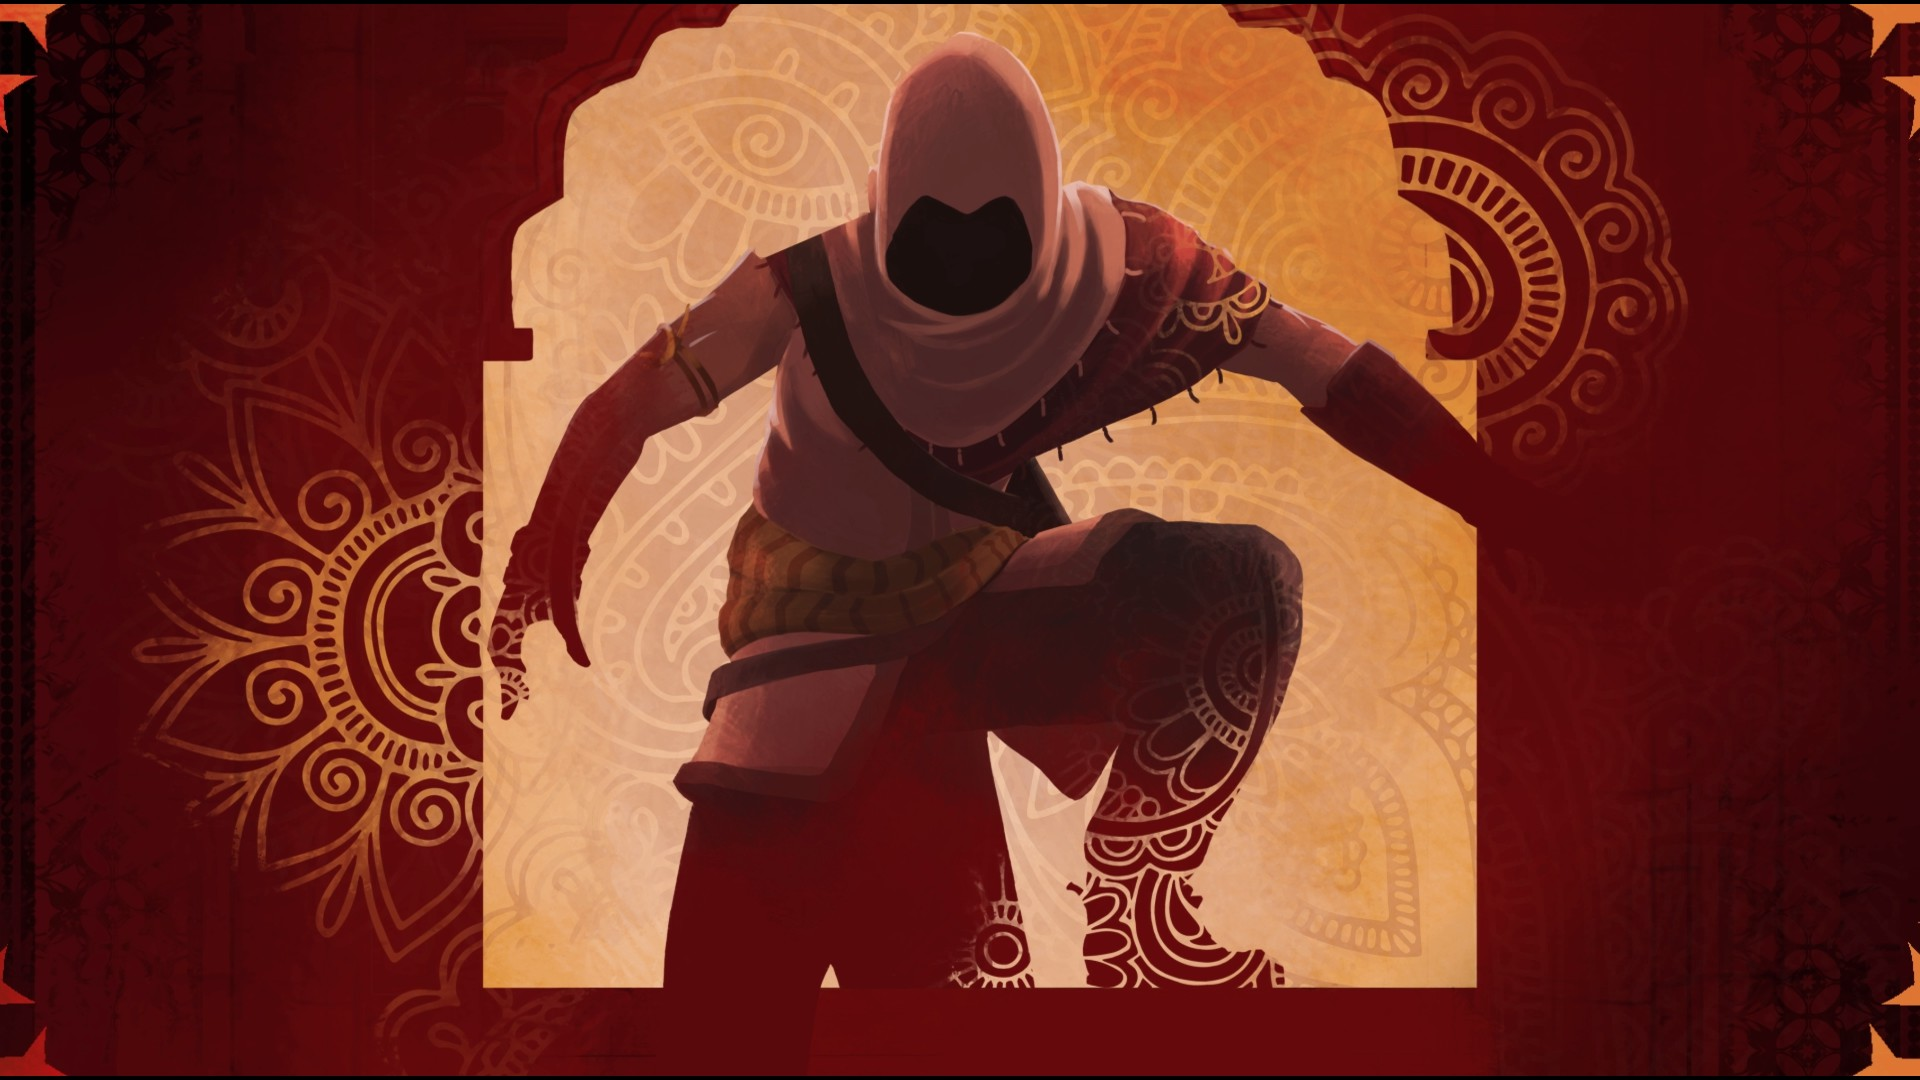 10. Assassin's Creed Chronicles: India